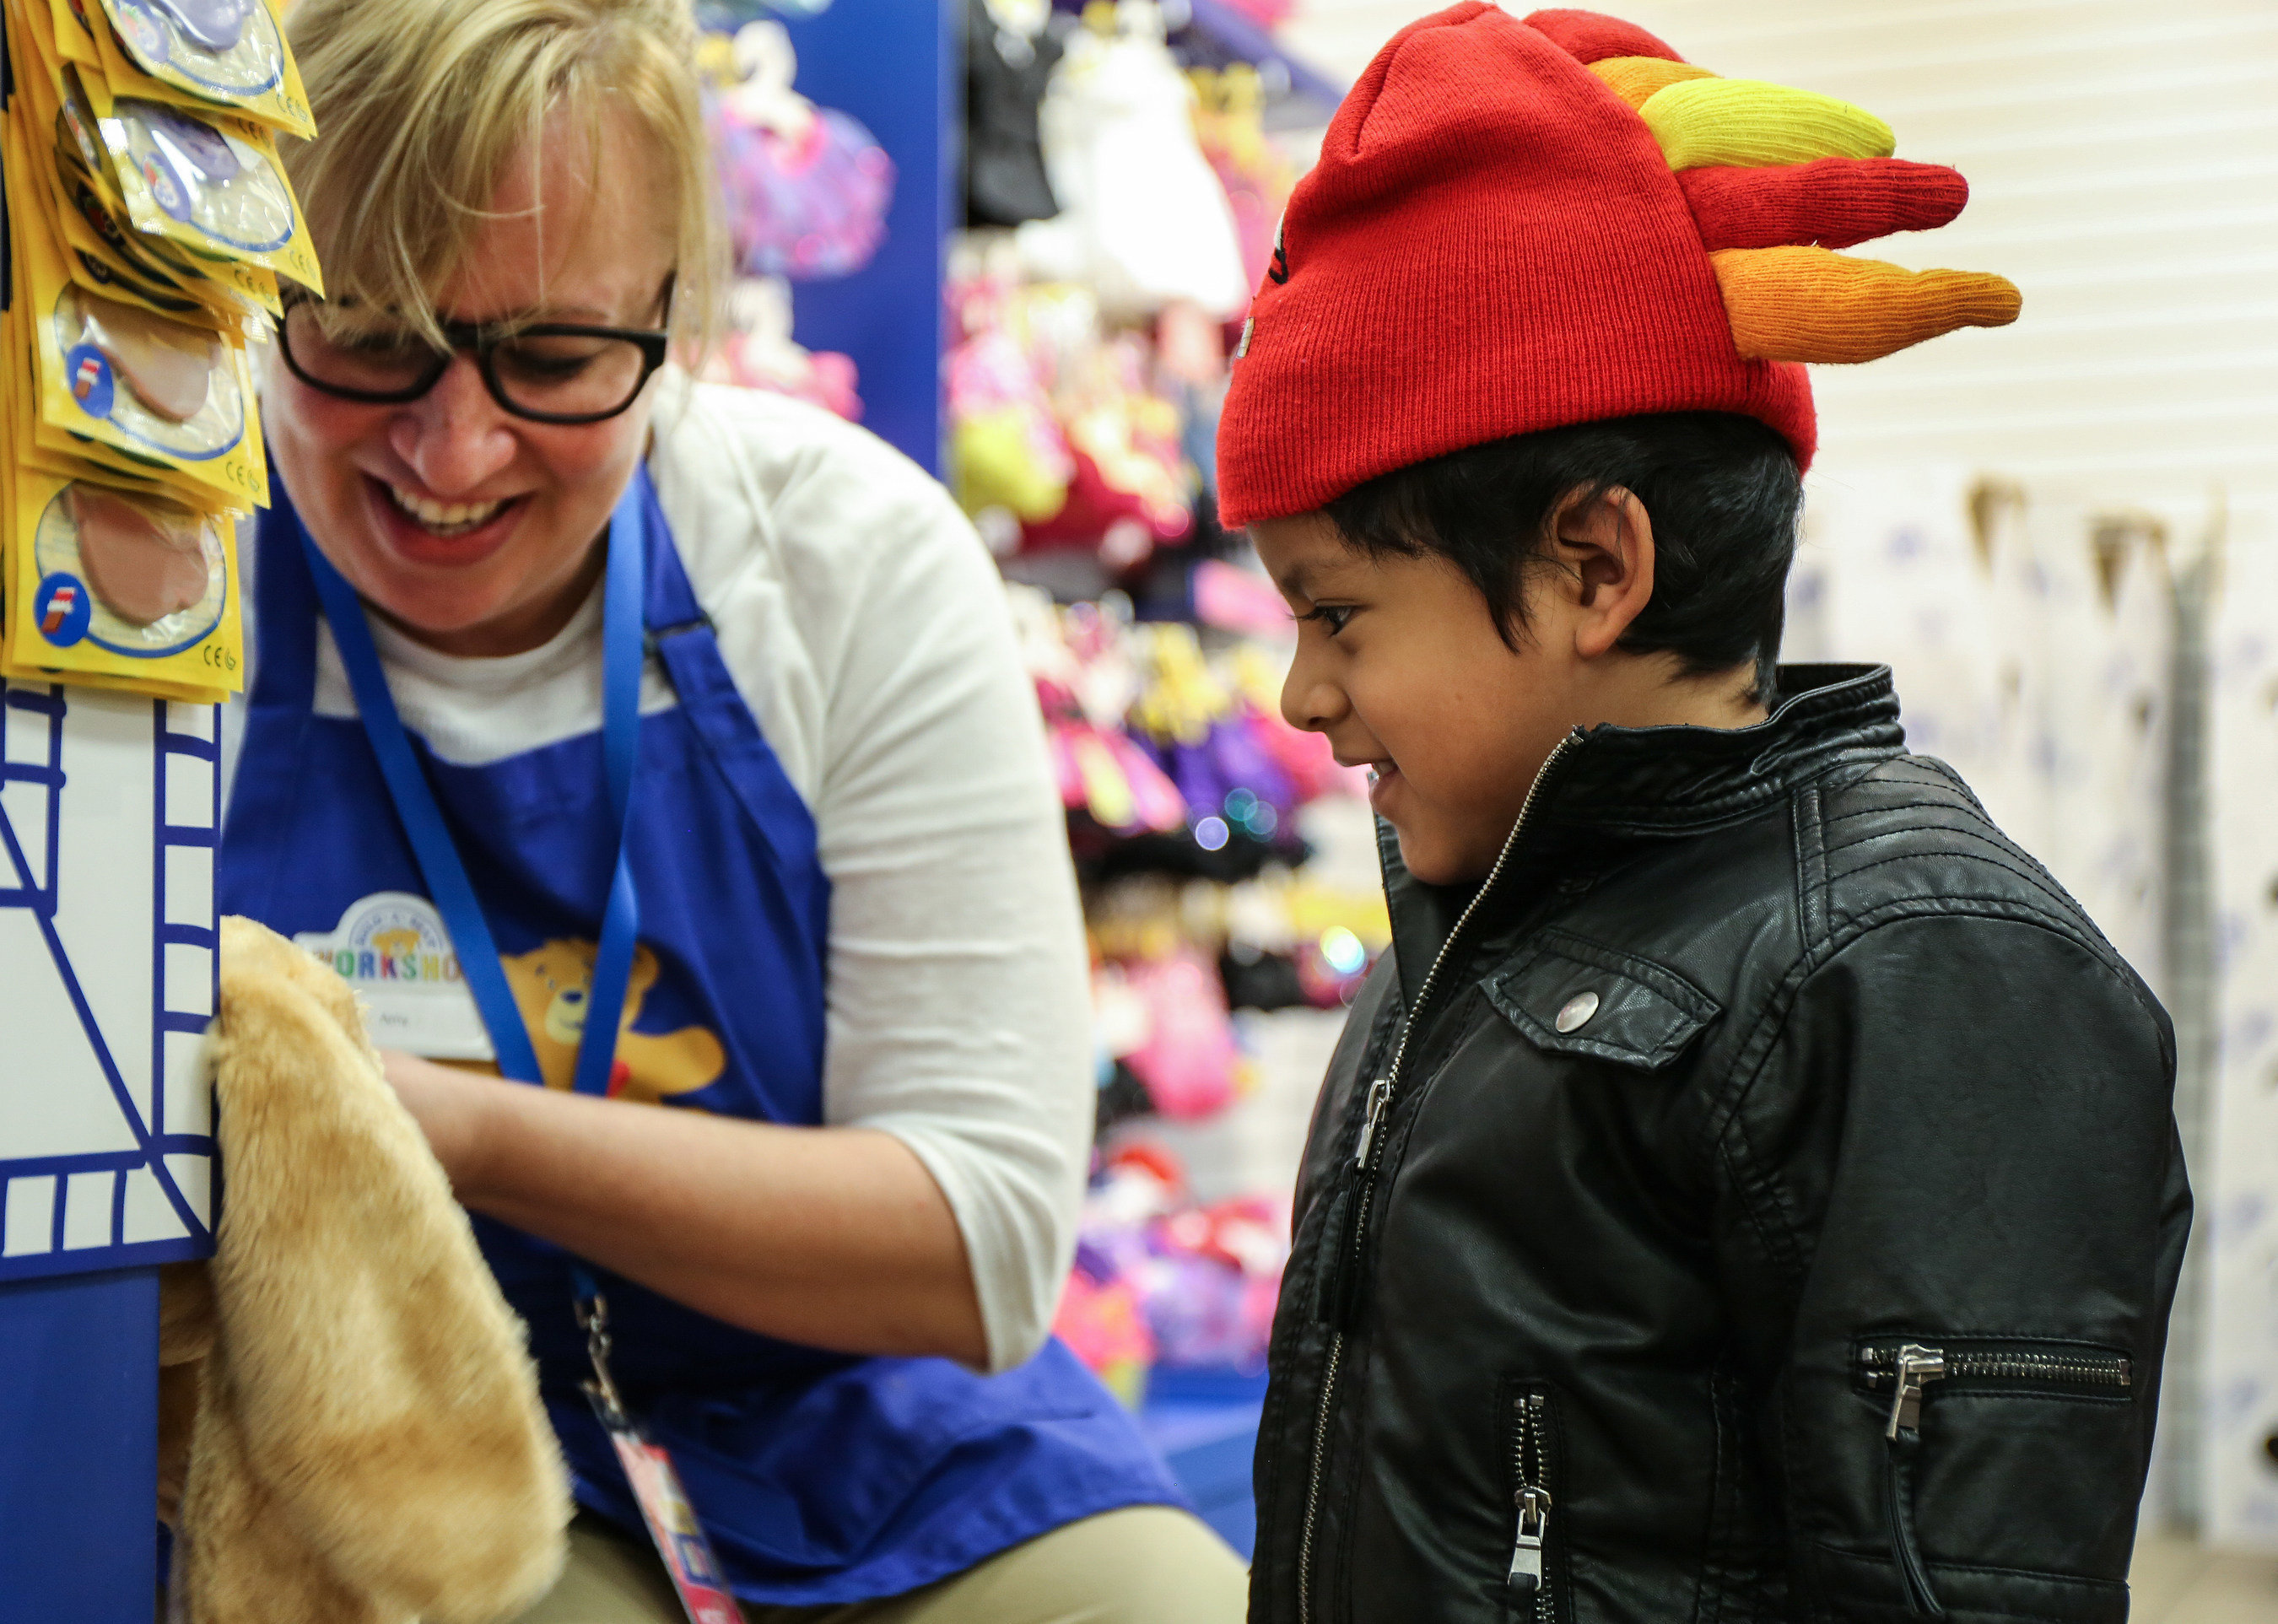 Vitonio with Build-A-Bear Workshop Chief Workshop Manager Amy Robinson, is stuffing a furry friend to celebrate the Share Your Heart cause campaign benefitting Save the Children's Journey of Hope program. The Build-A-Bear Foundation matched $100,000 of guest donations to raise more than $300,000 for children in need in the United States, Canada and the United Kingdom. Photo courtesy of Save the Children.